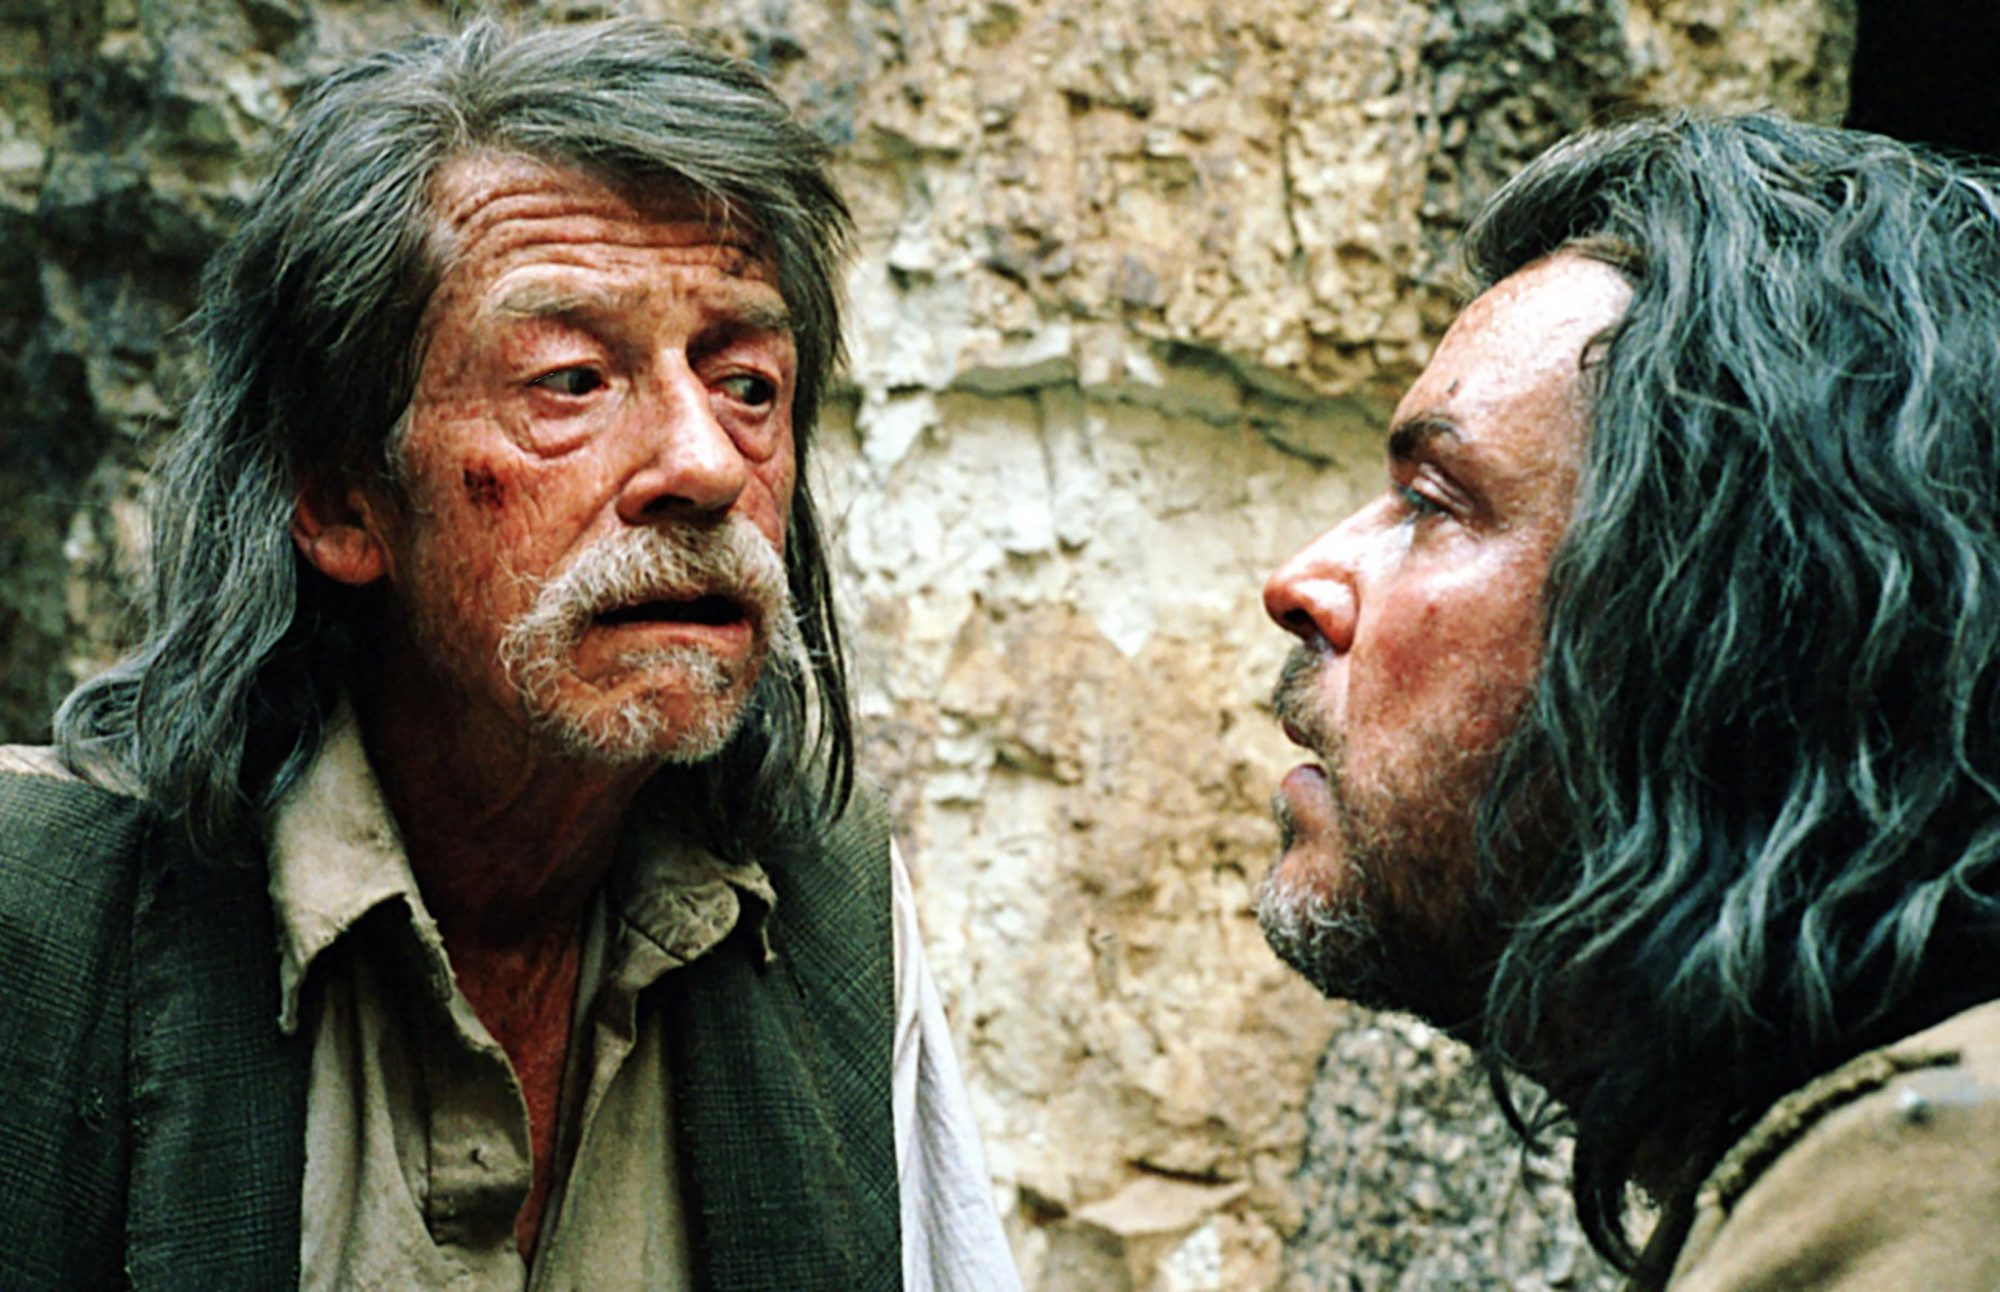 THE PROPOSITION, John Hurt, Danny Huston, 2005, ©First Look Features/Everett Collection